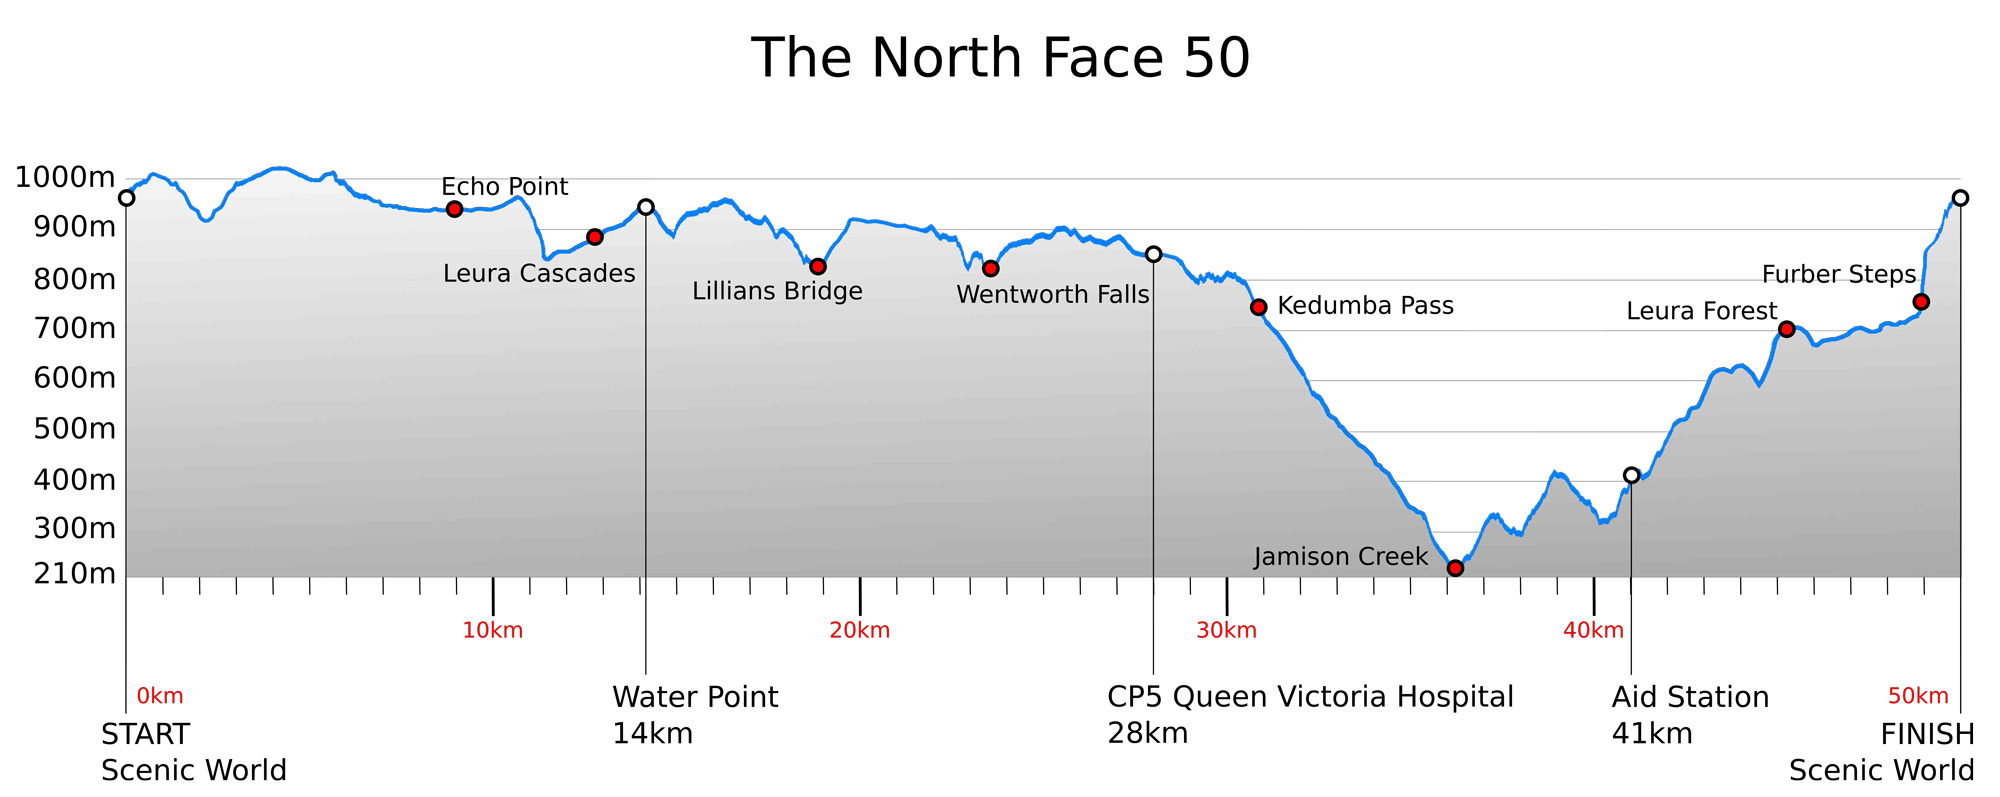 Stone Cat Elevation Profile : The north face australia trireports transitions